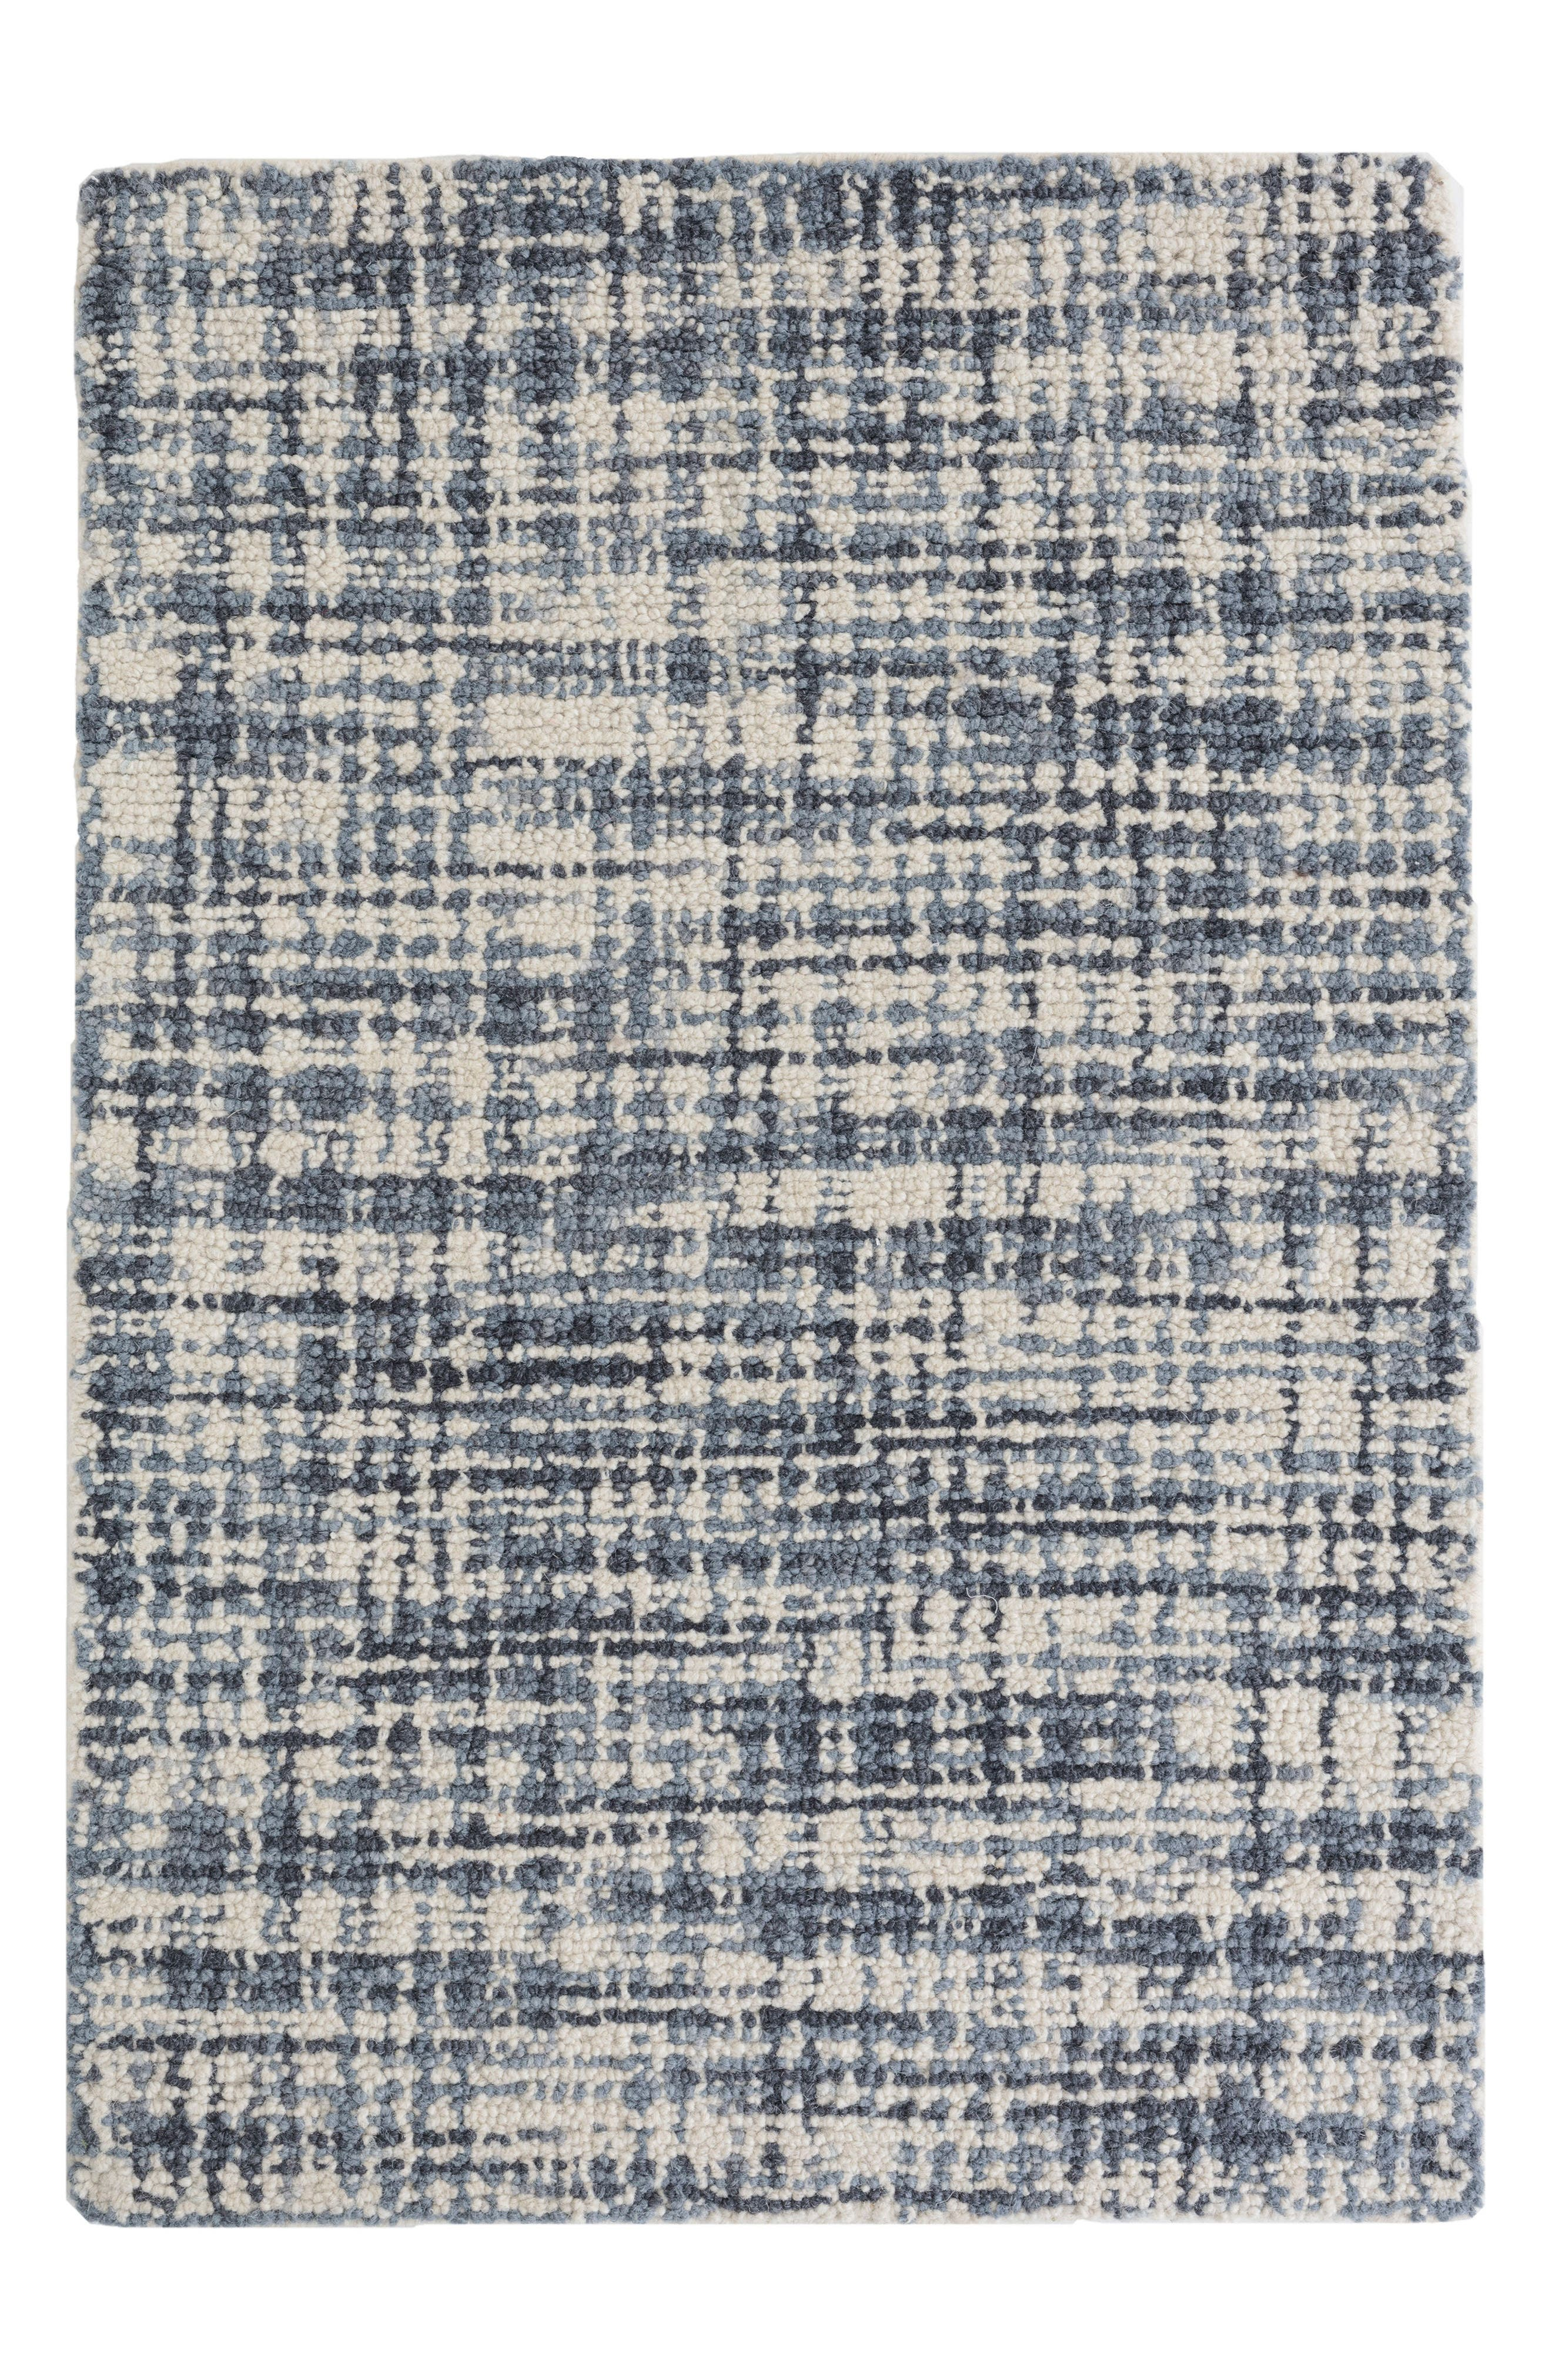 Olio Hooked Wool Rug,                         Main,                         color, Blue